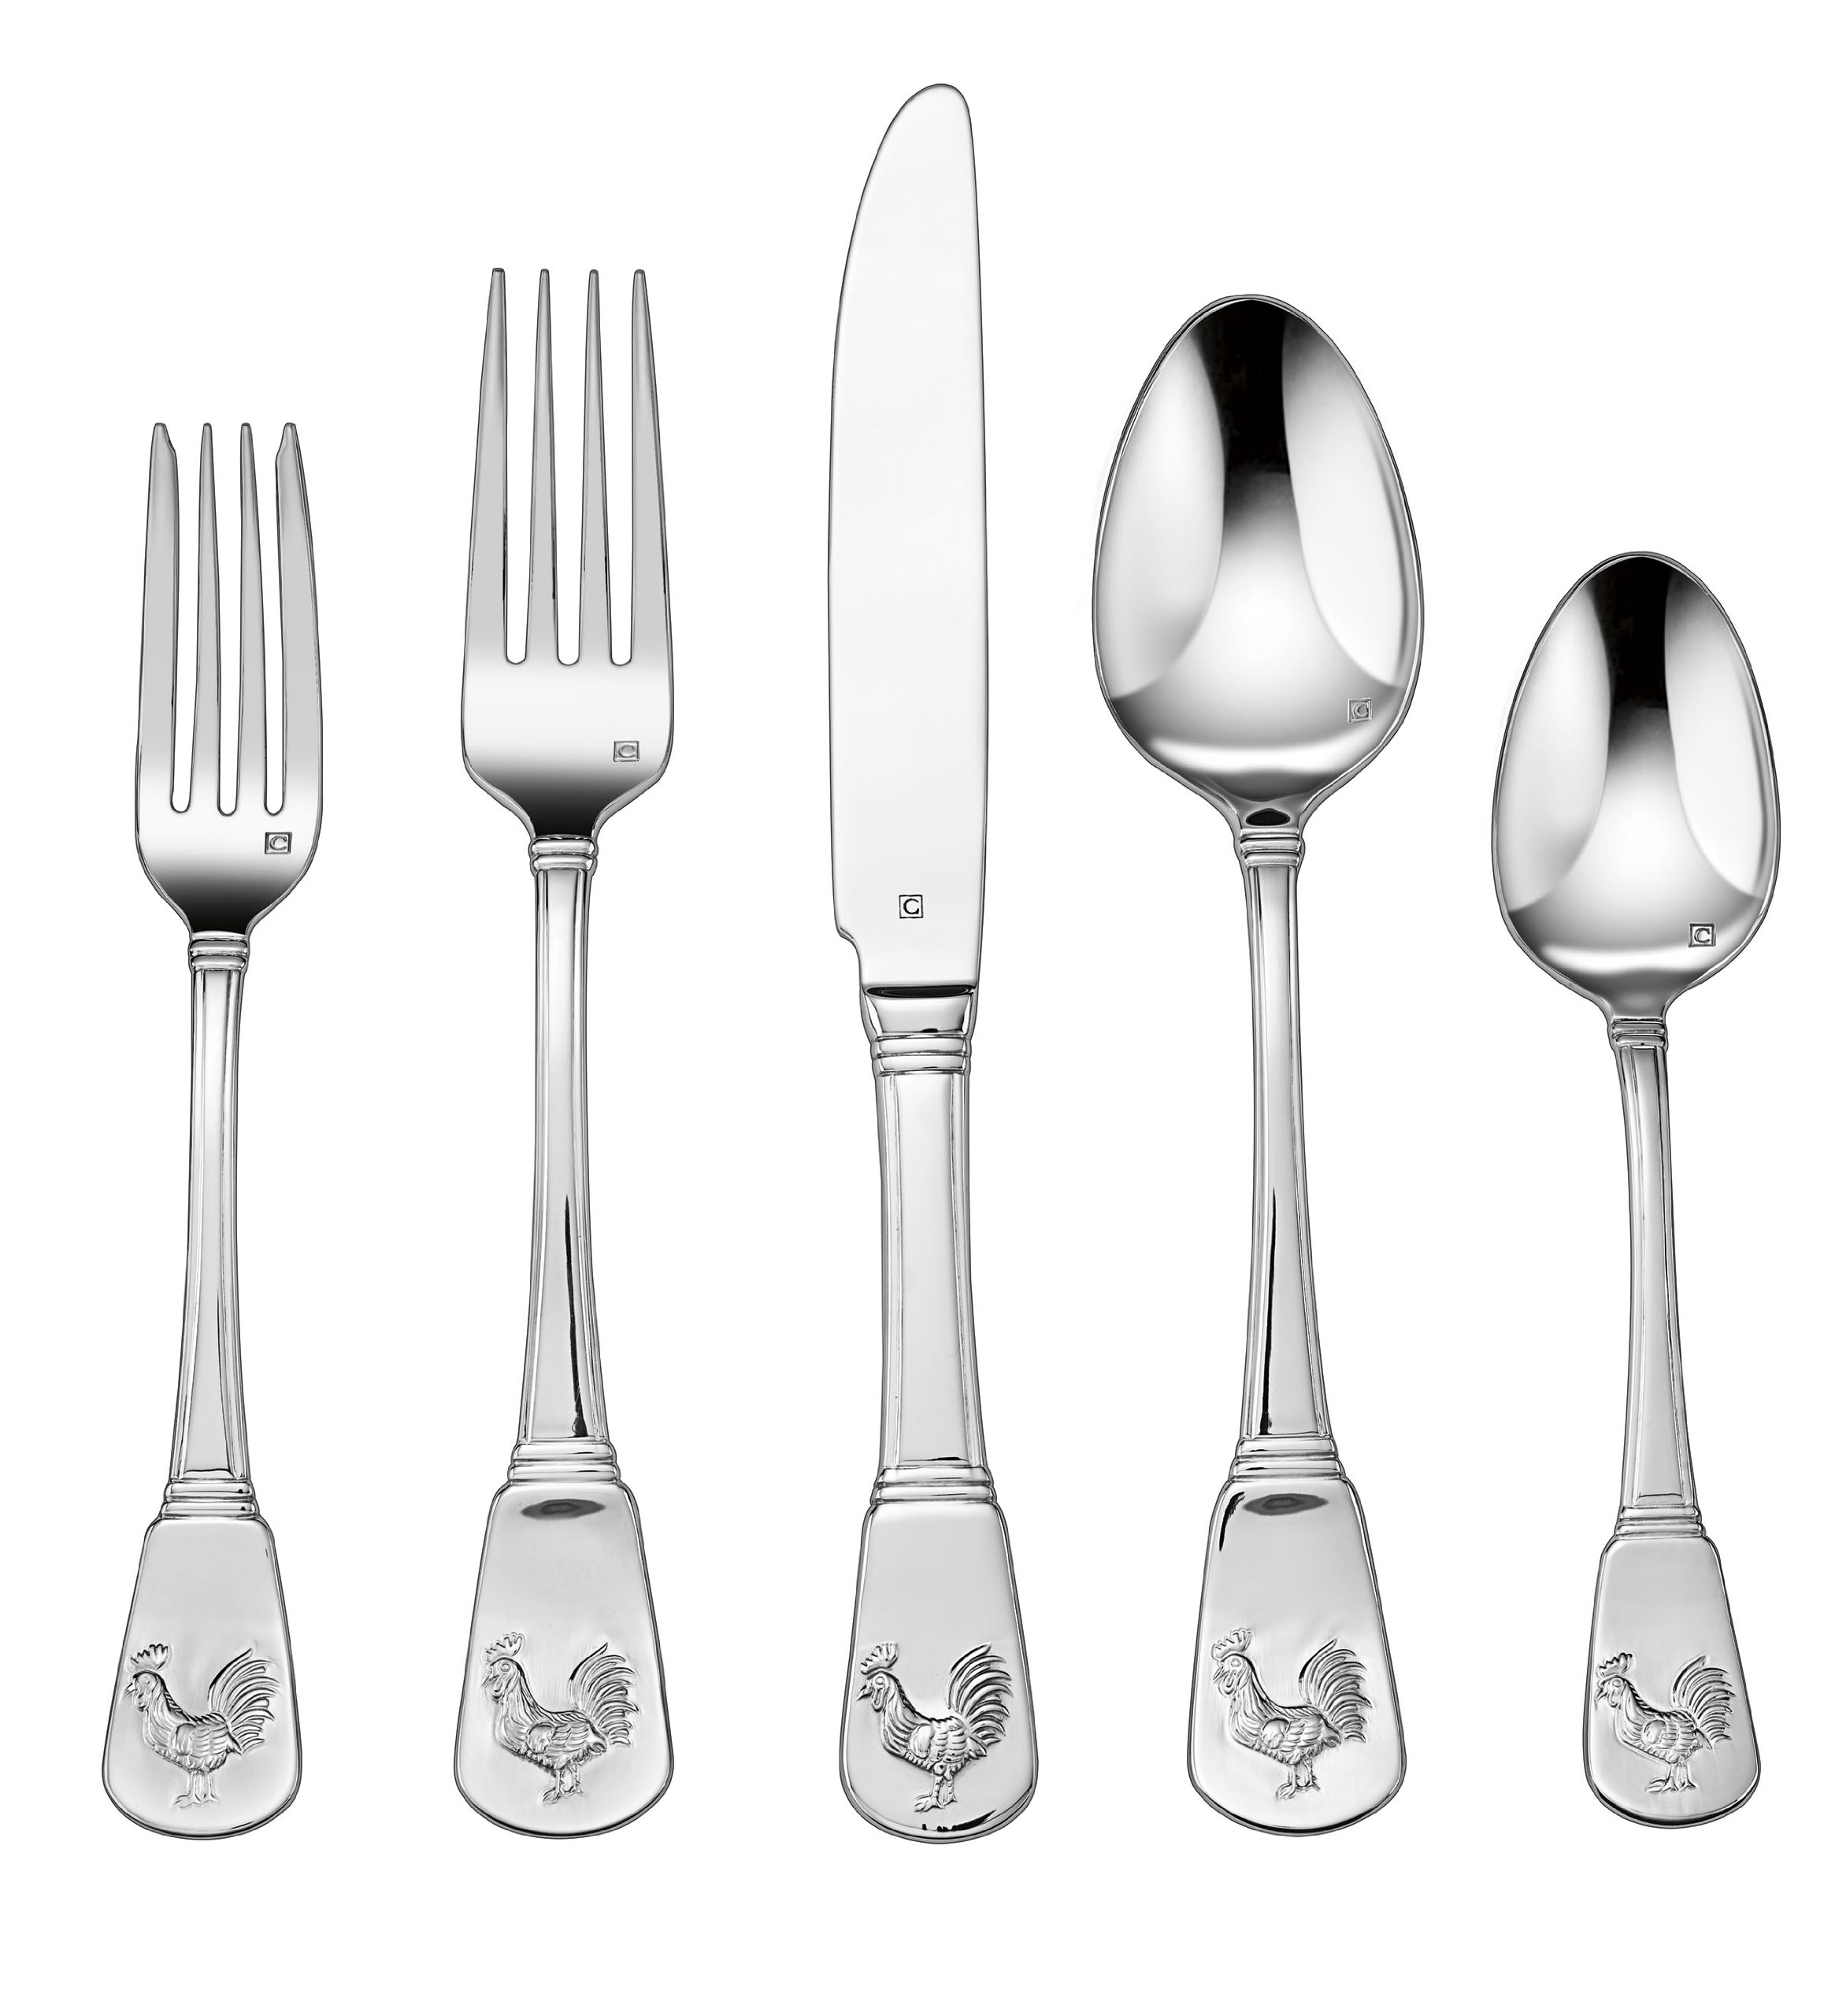 Cuisinart CFE-01-FR20 20-Piece Flatware Set, French Rooster